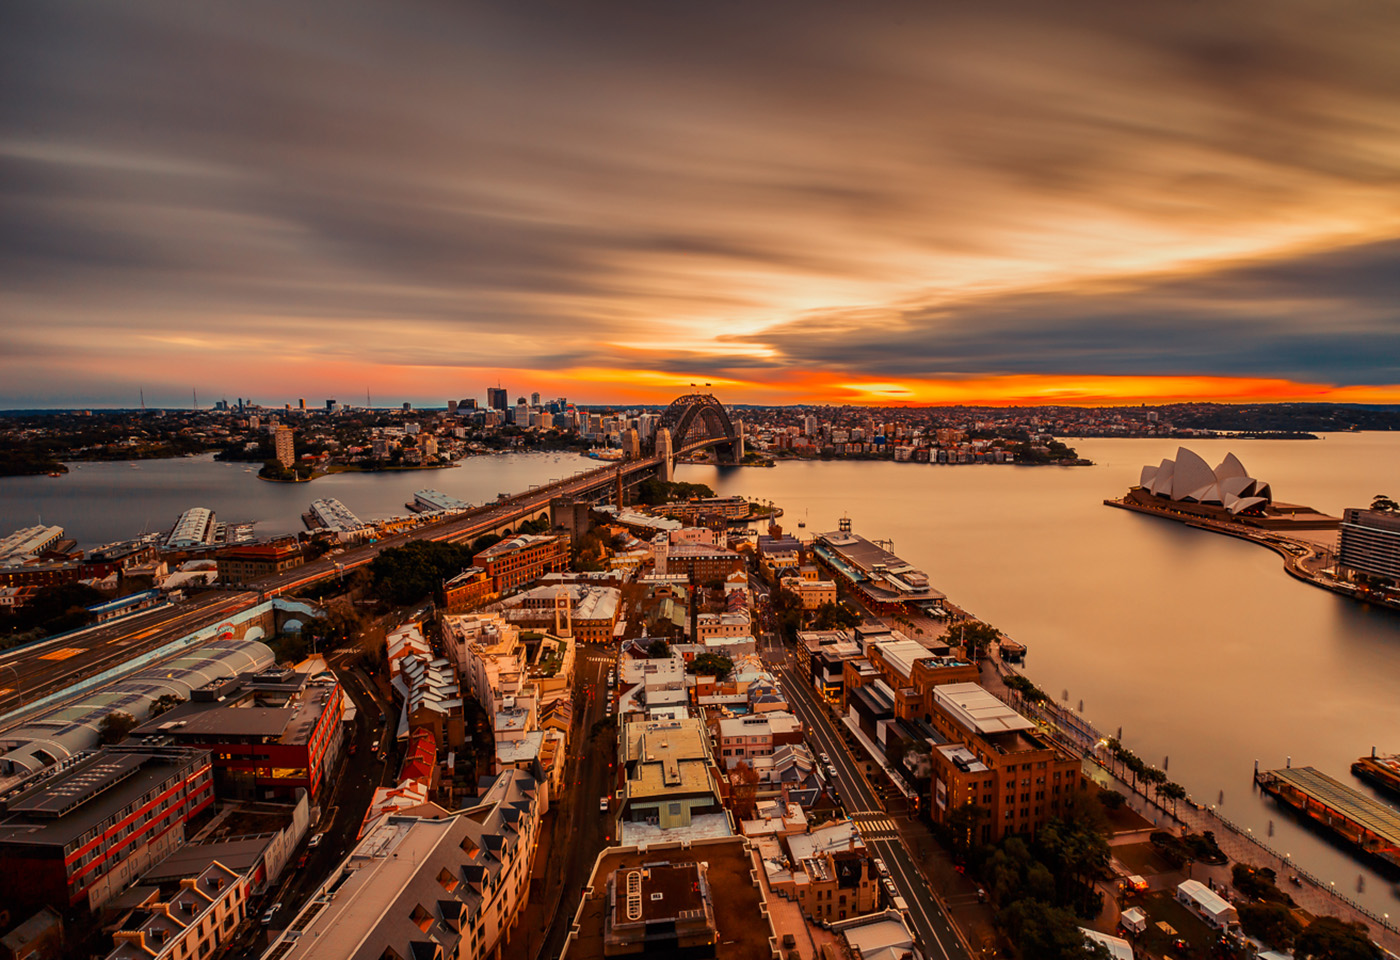 Landscape image of Sydney city by Beau Weti